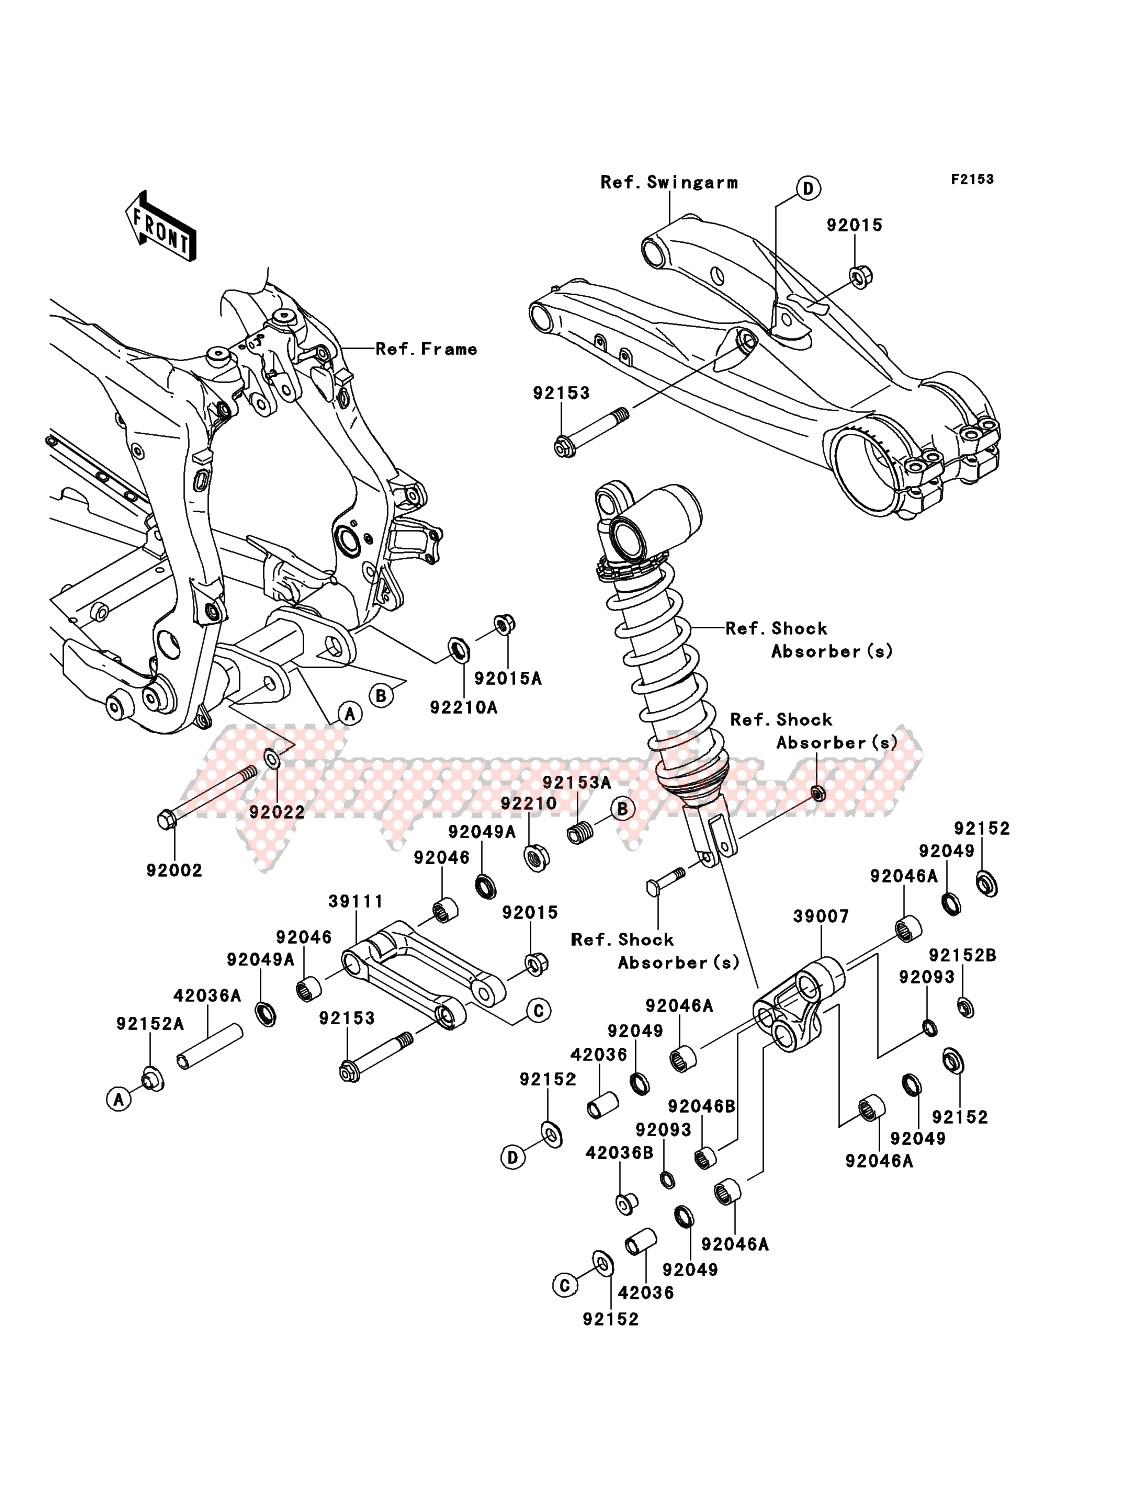 Rear Suspension image